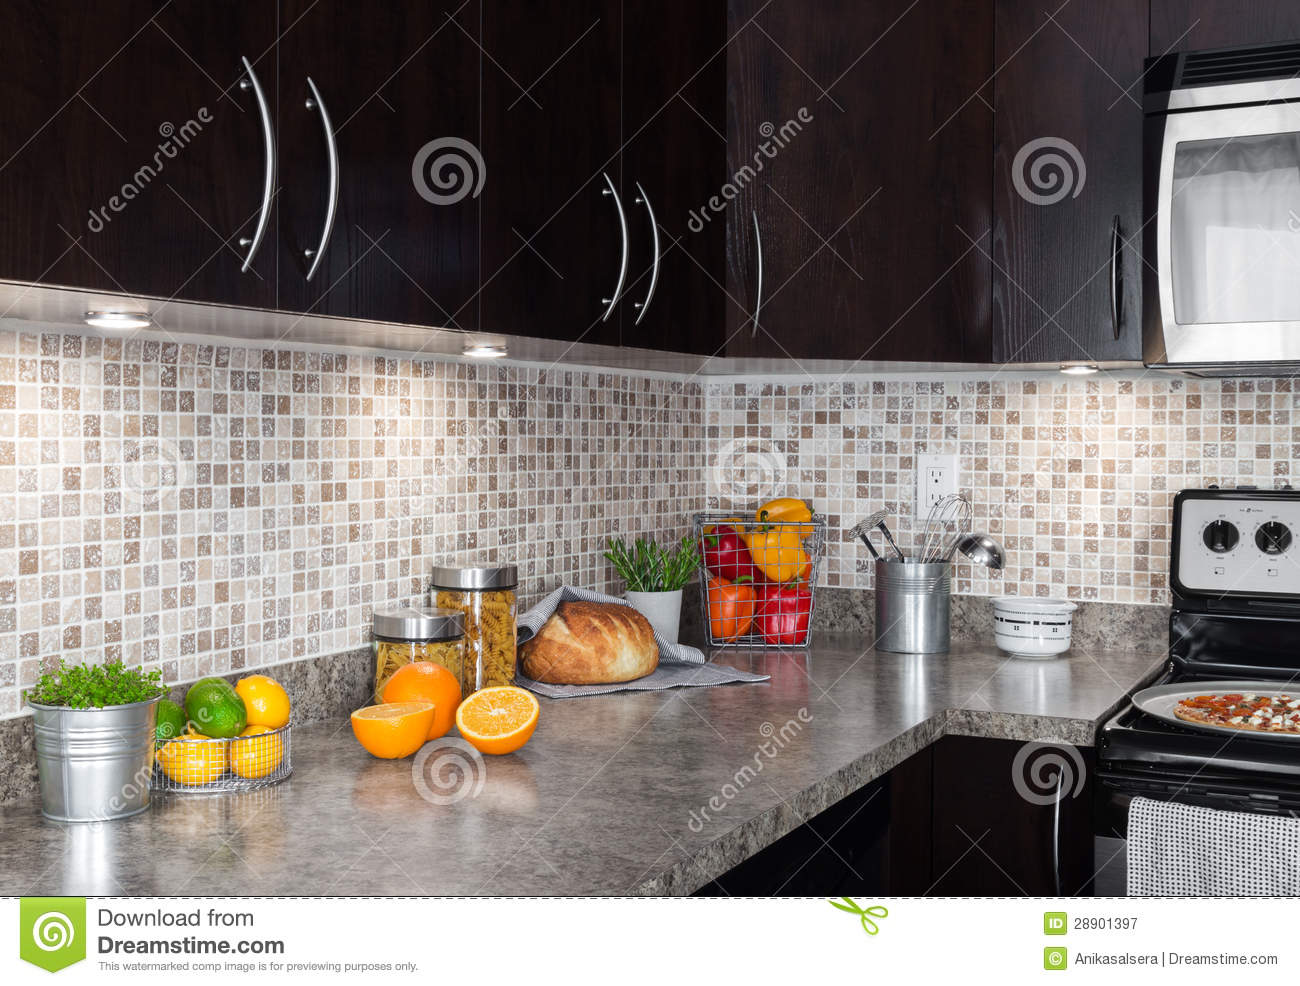 Kitchen With Food kitchen countertop with food ingredients and herbs stock